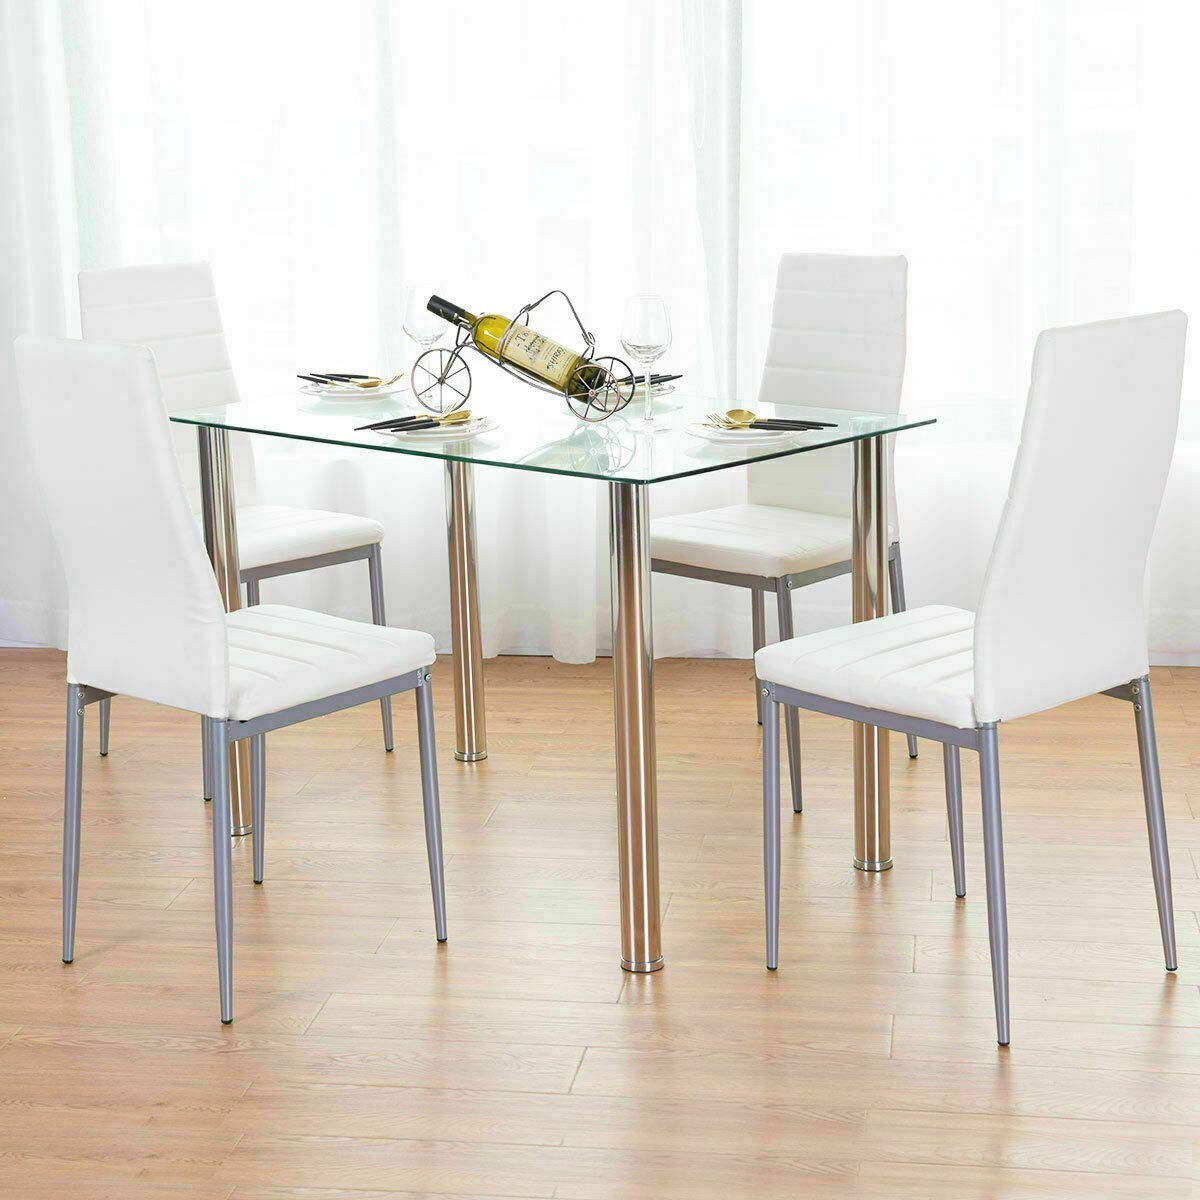 Dining Table With Chairs 4homart 5 Pcs Glass Dining Kitchen Table Set Modern Tempered Glass Top Table And Pu Leather Chairs With 4 Chairs Dining Room Furniture Black Table Chair Sets Furniture